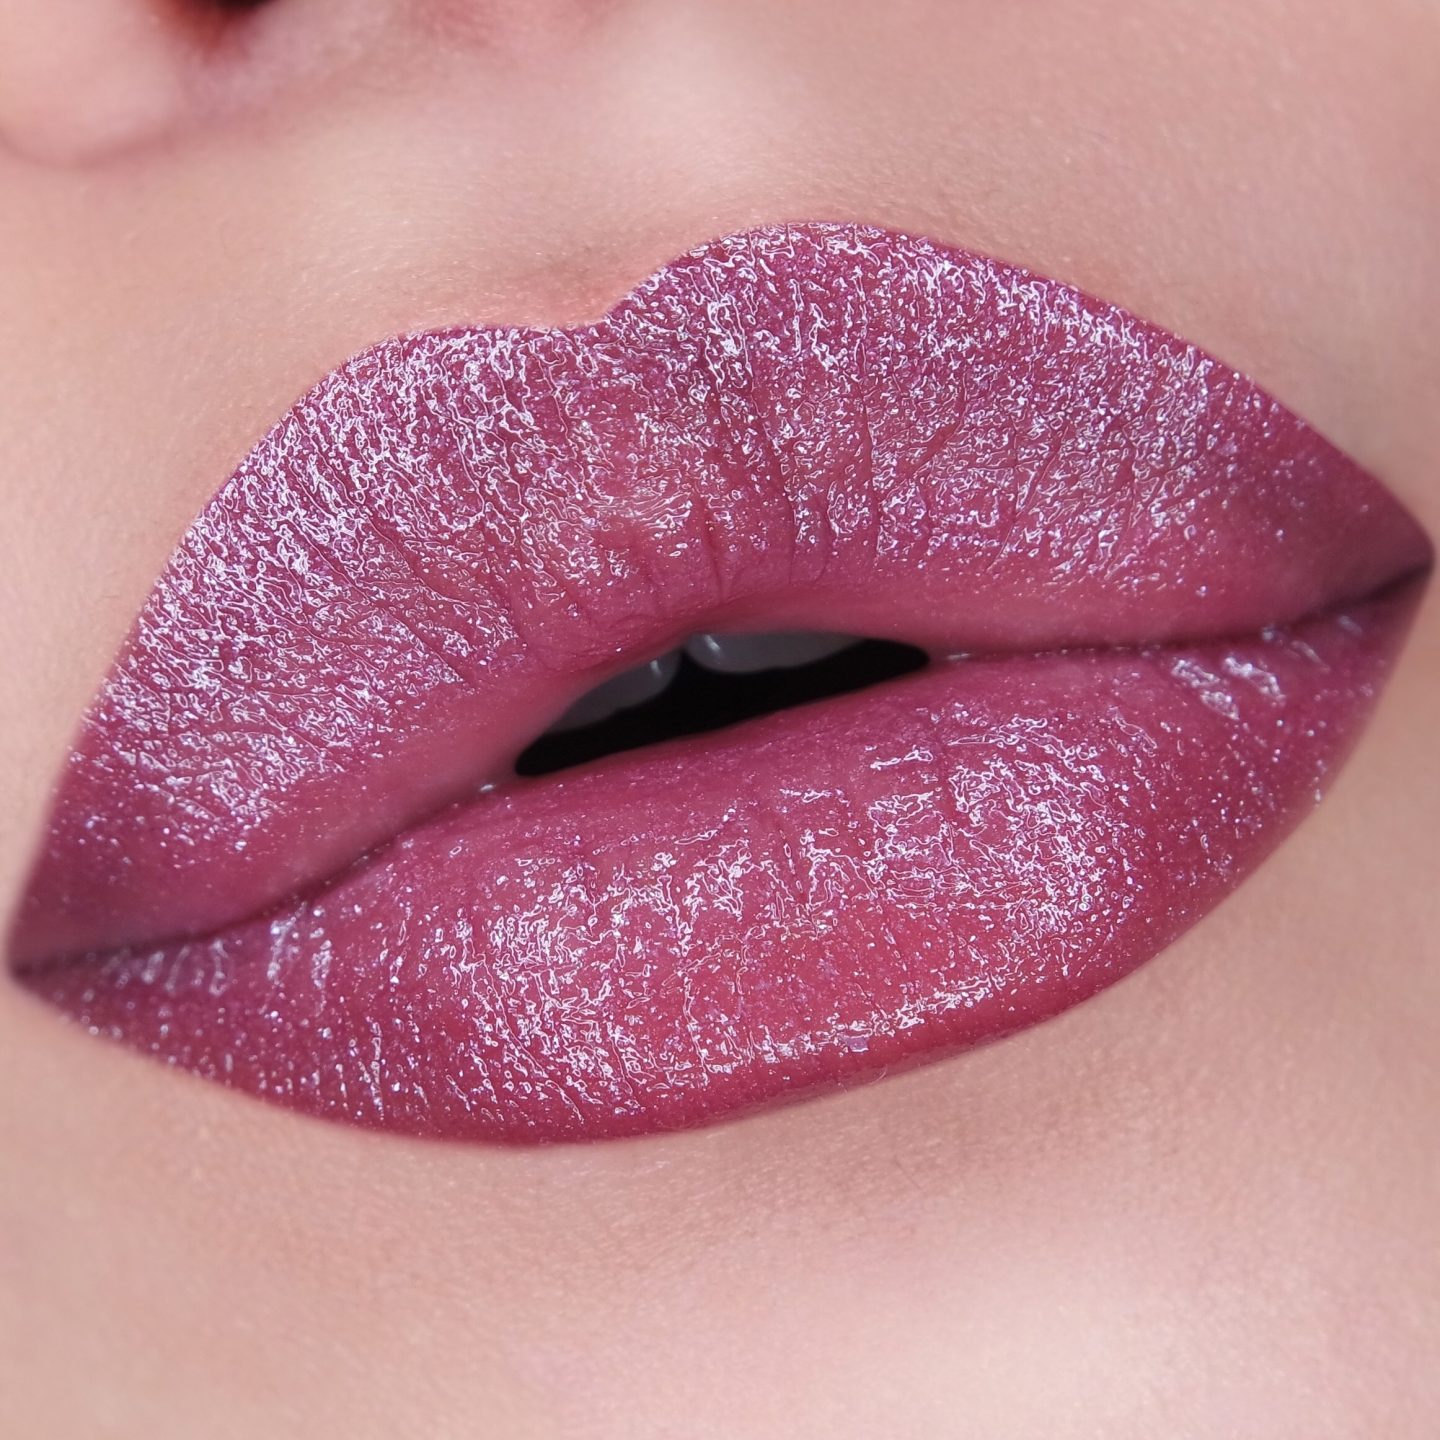 Estée Lauder Pure Color Love Lipstick in Luna Orchid Swatch